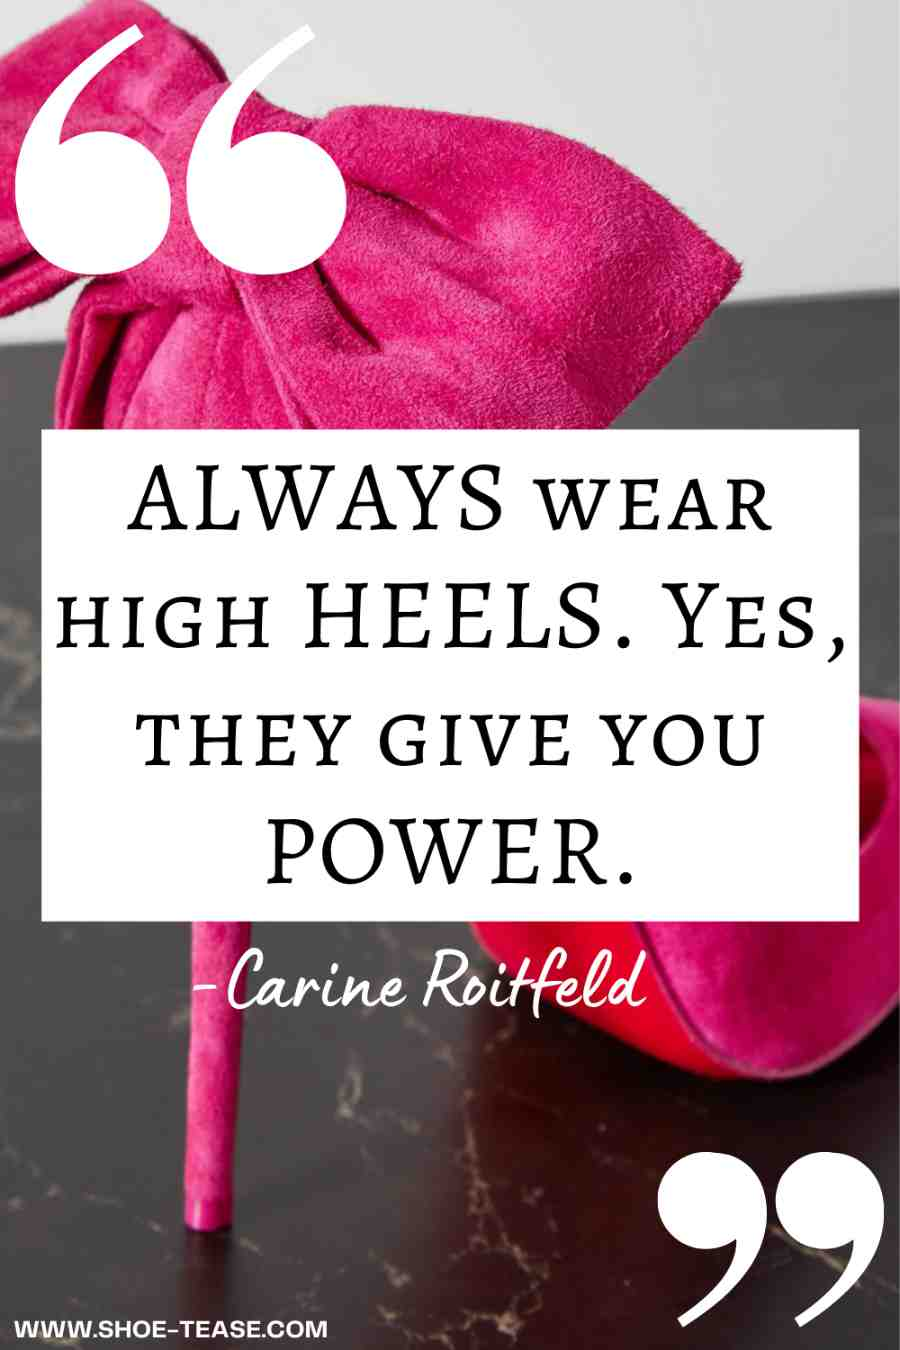 """High Heels Quote text """"Always wear high heels, yes they give you power. Carine Roitfeld"""" on top of image with hot pink high heels stiletto with red soles."""